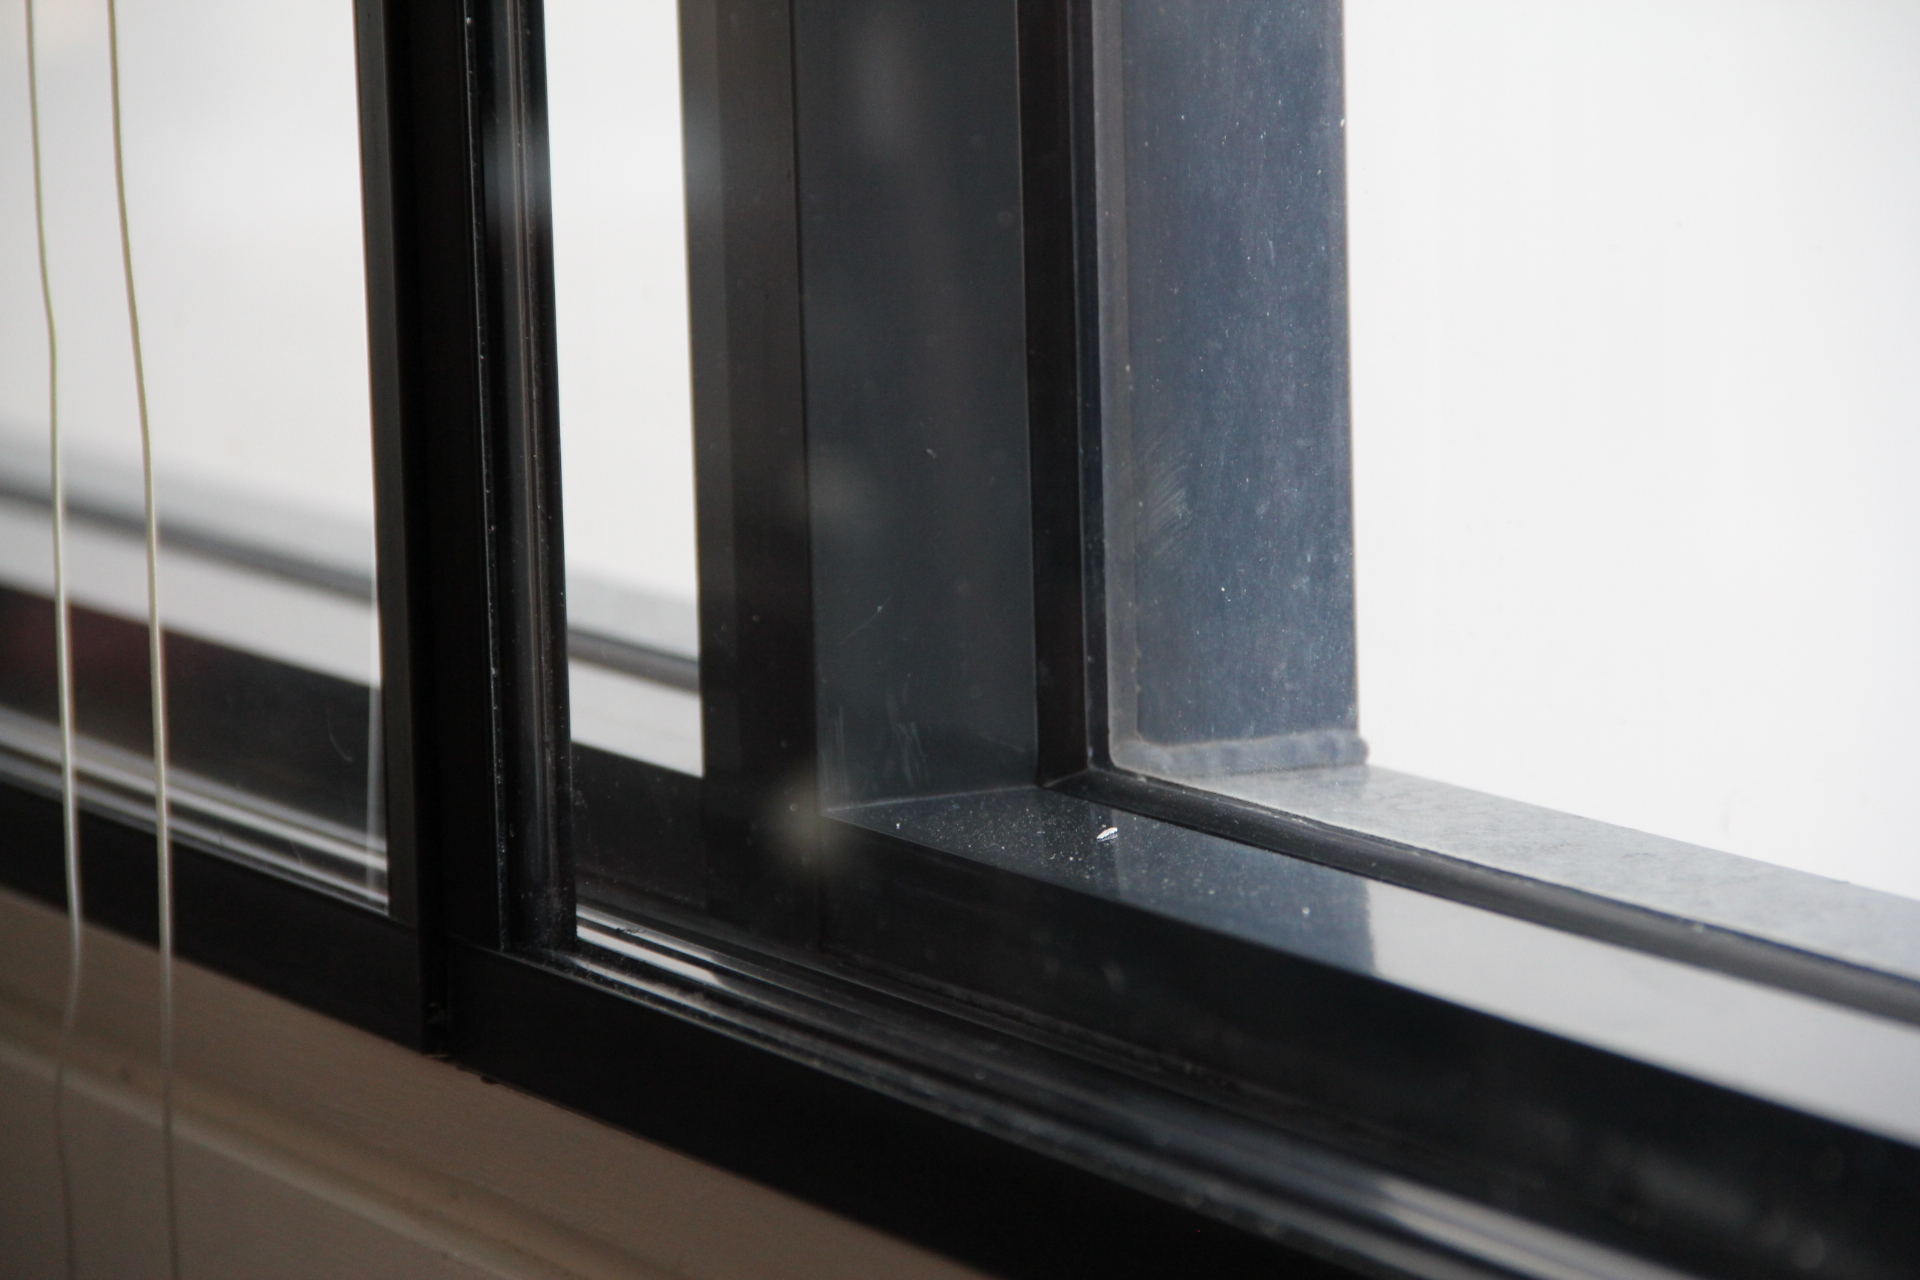 Double Glazed Windows : Double glazing existing windows magnetite